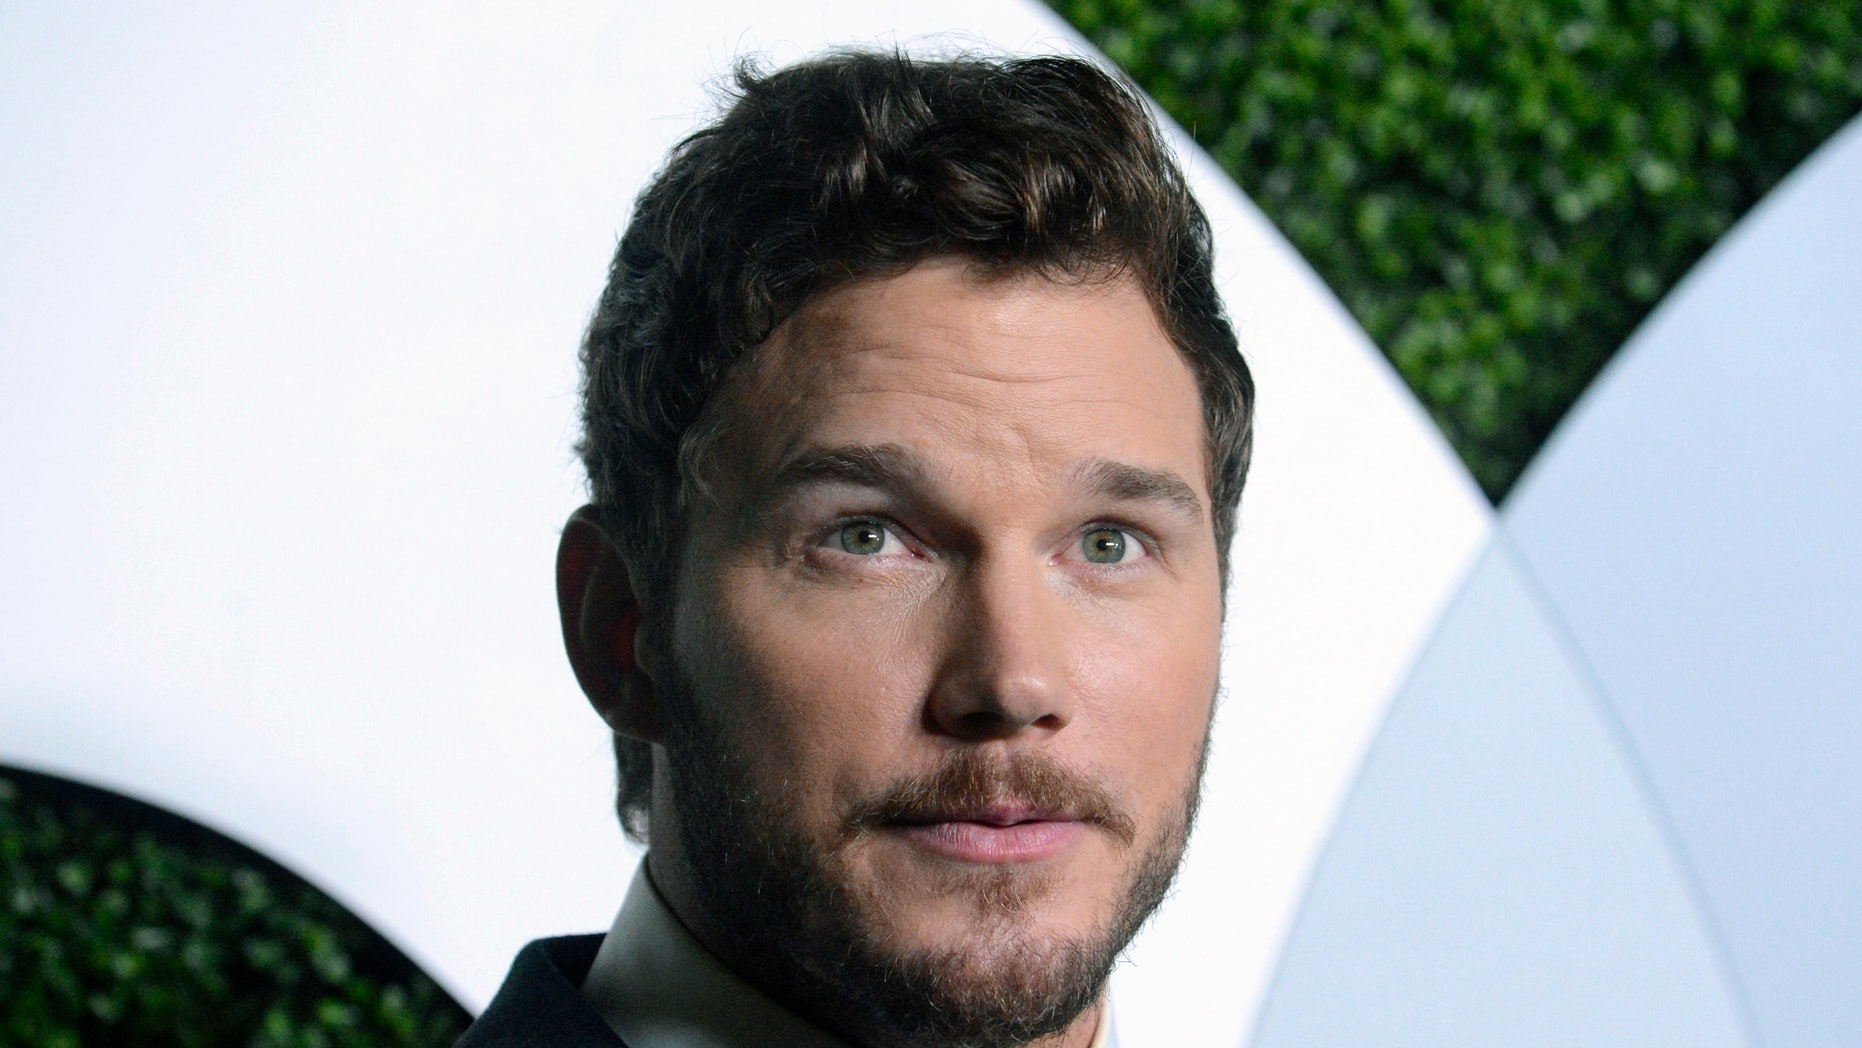 December 4, 2014.  Chris Pratt attends the GQ 2014 Men of the Year Party in West Hollywood, California.